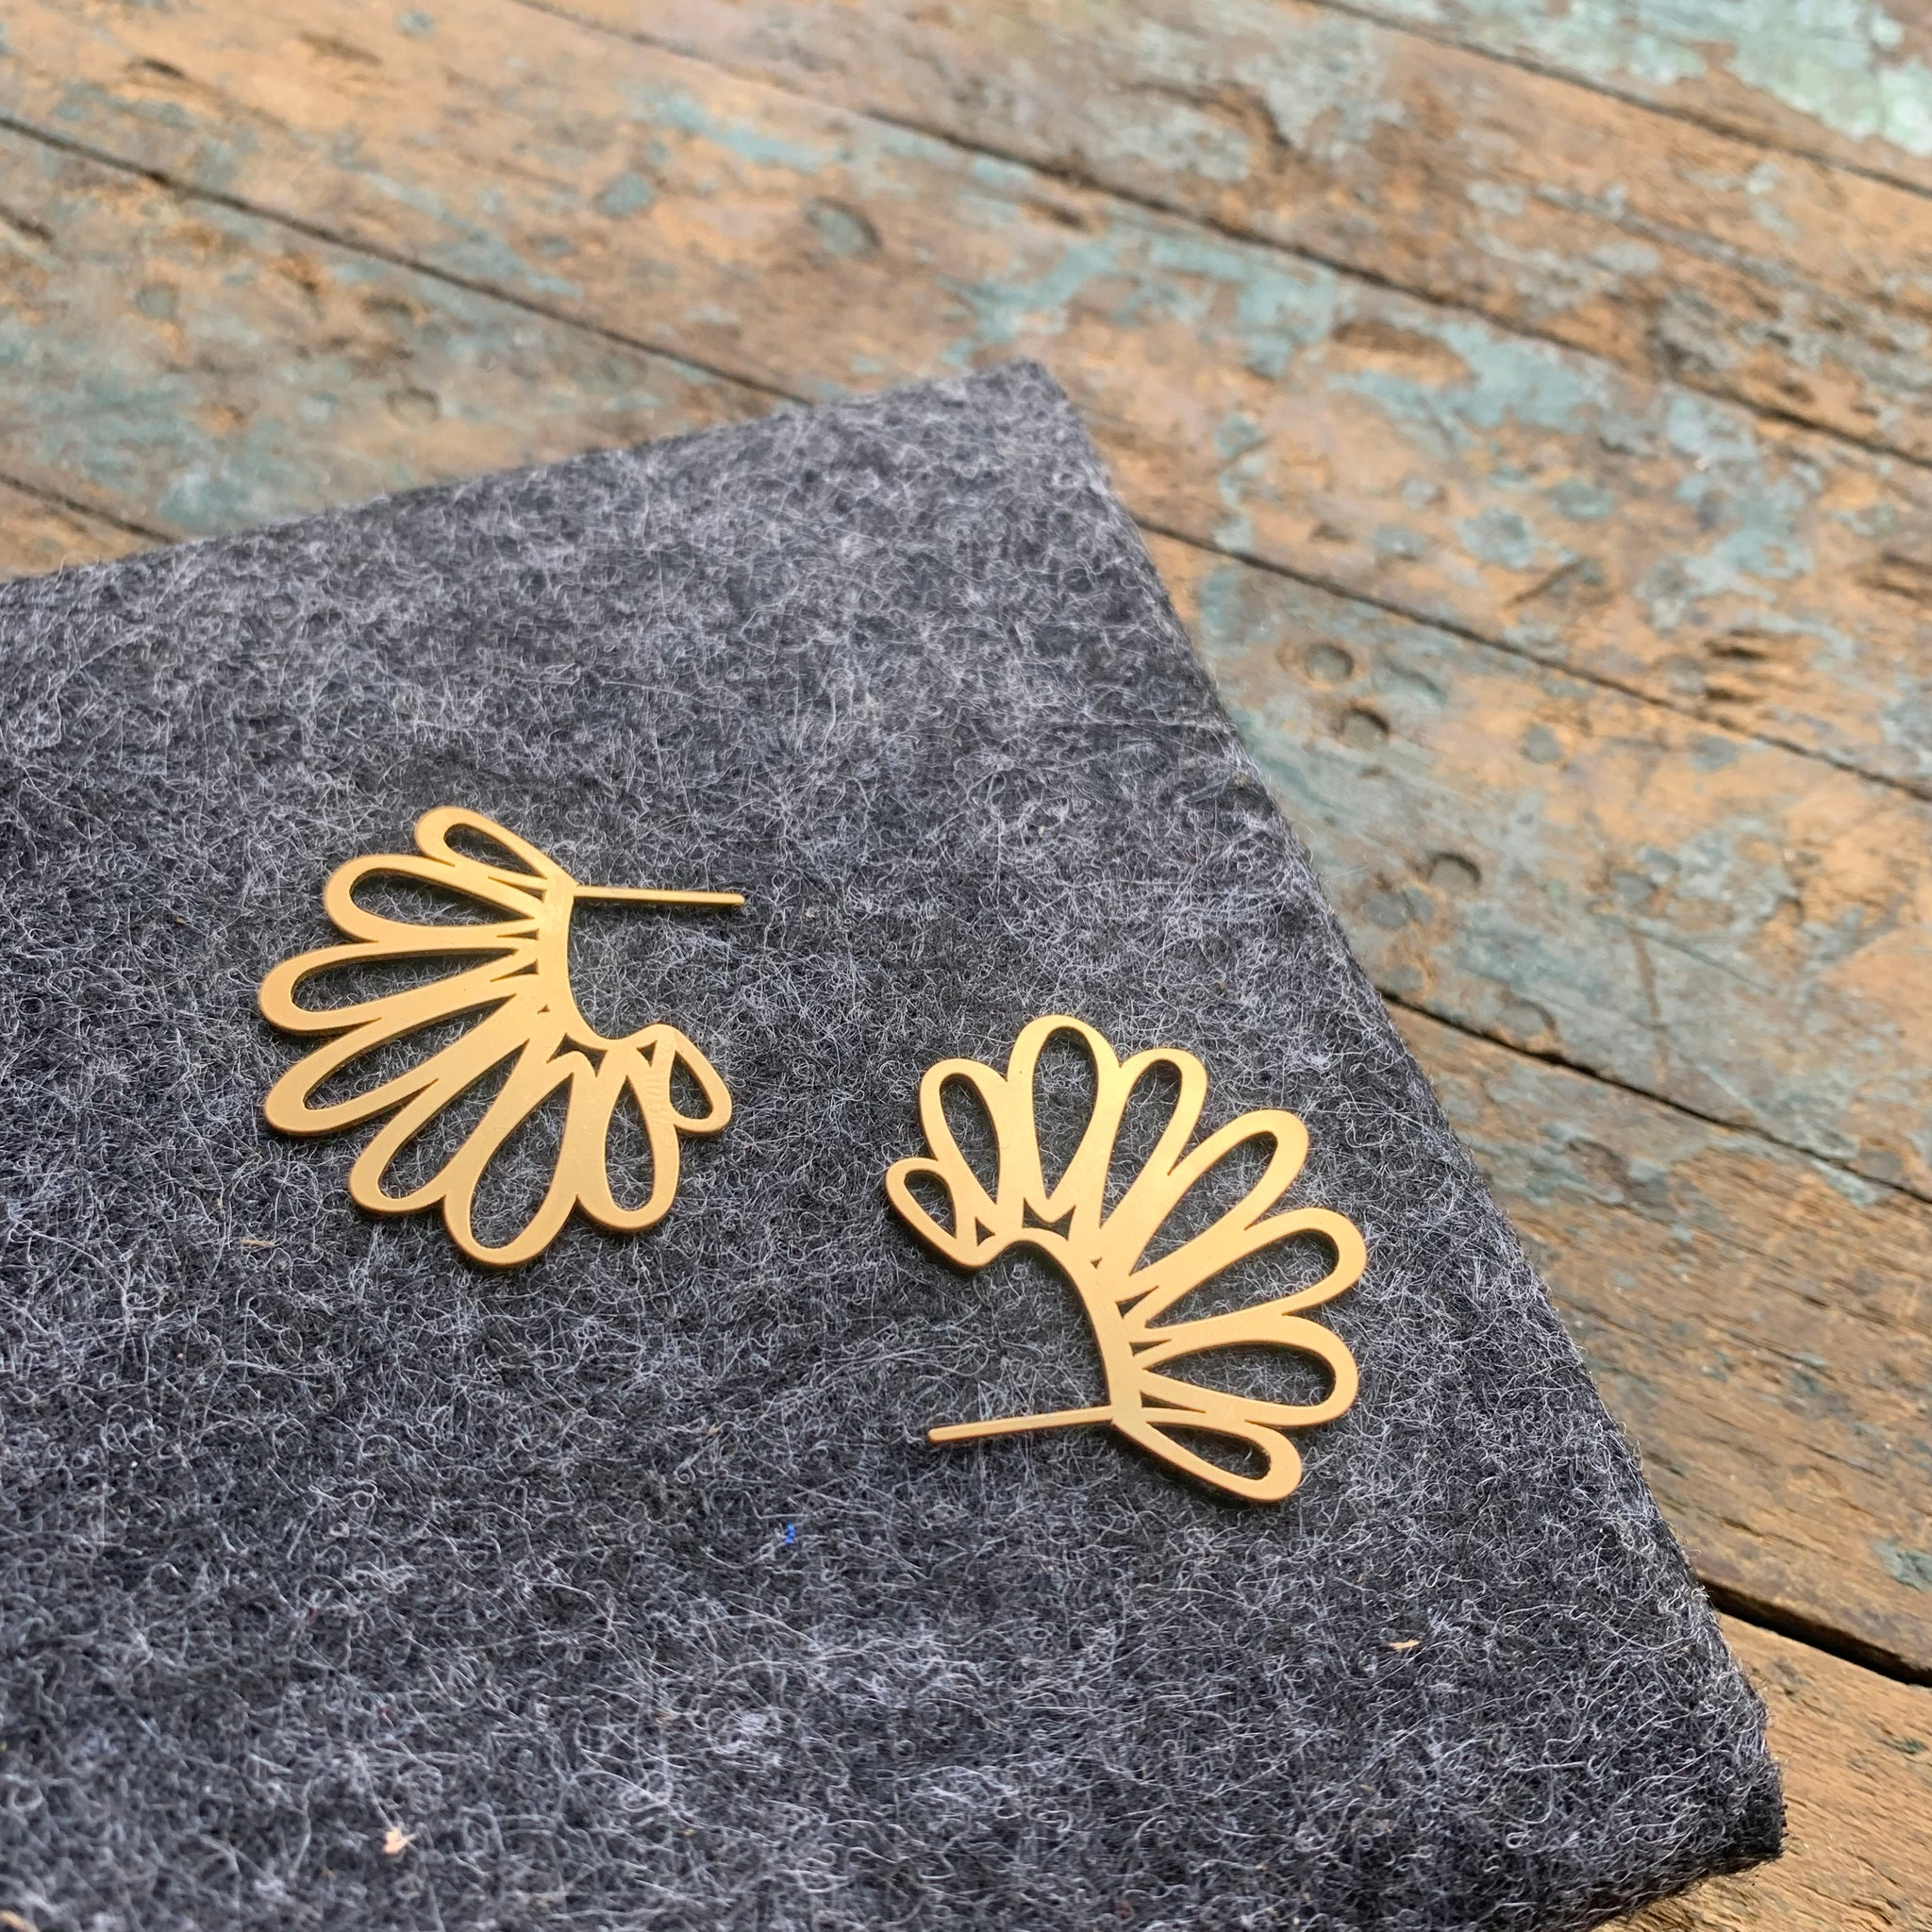 22 Carat Gold Plate Amulet Earrings by Insync Design - Upstate MN